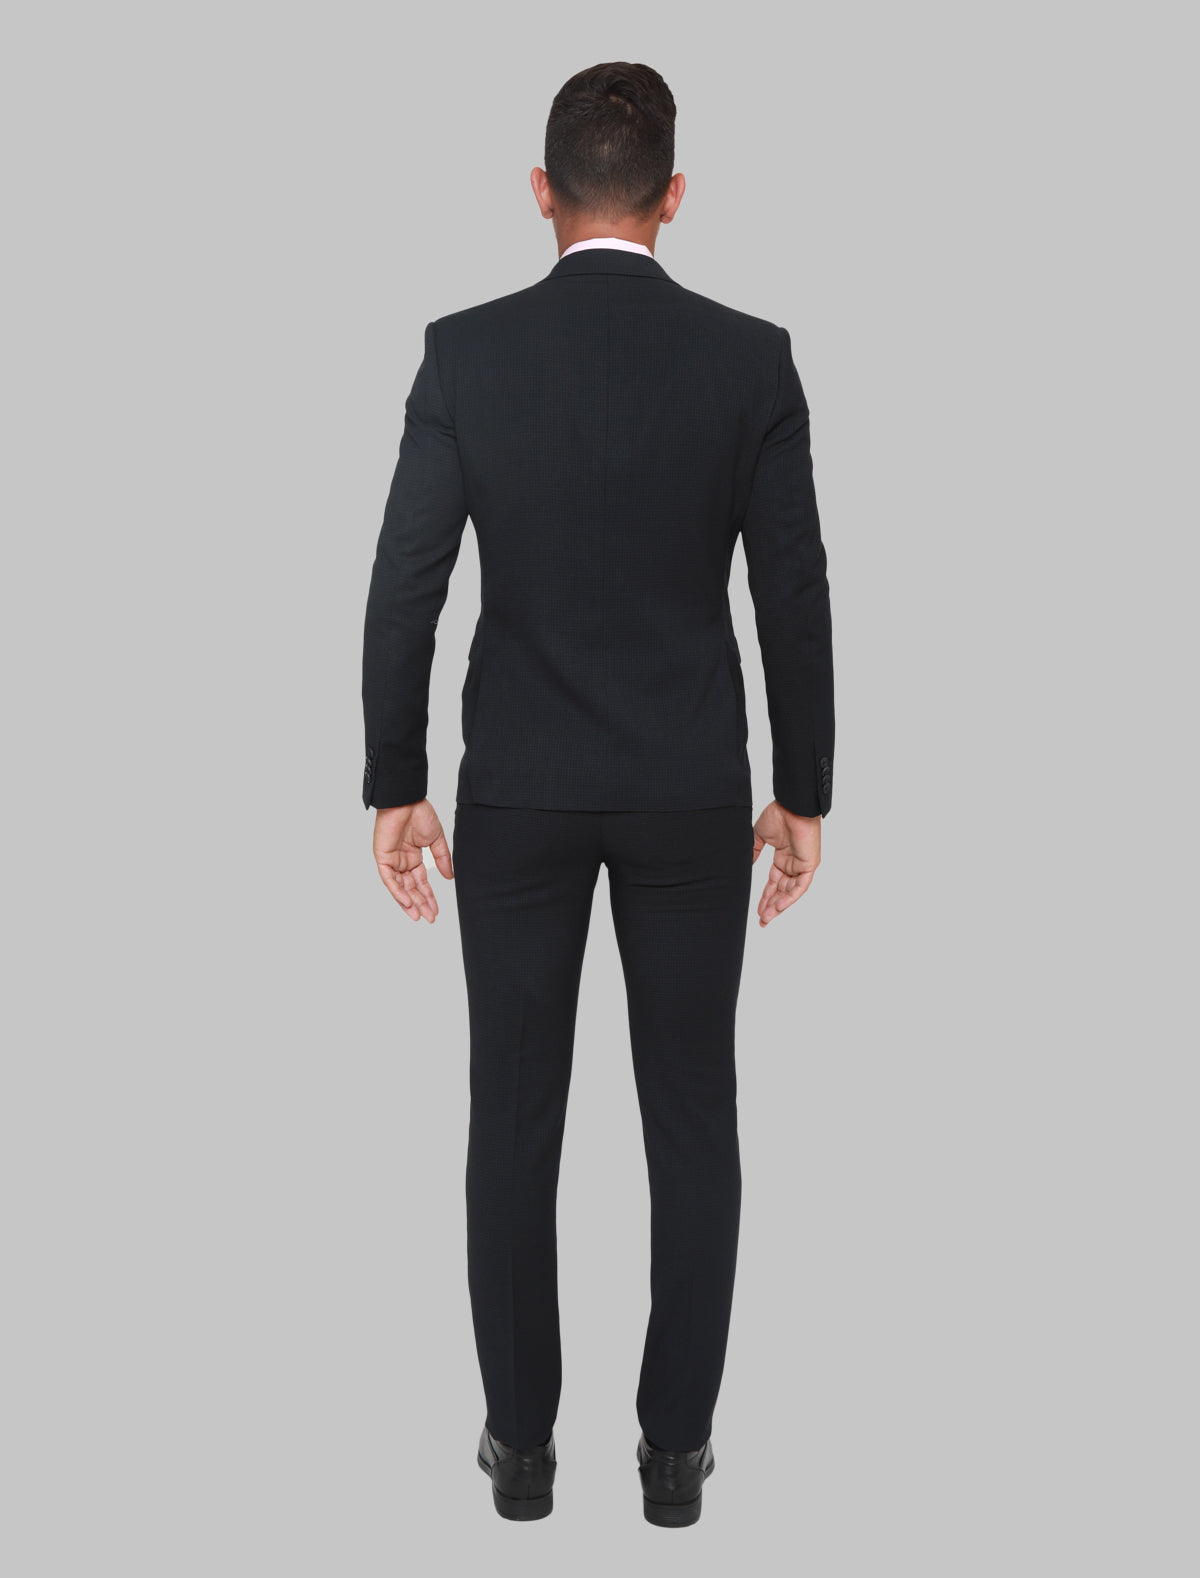 MOSAIQUE BASIC BLACK SUIT